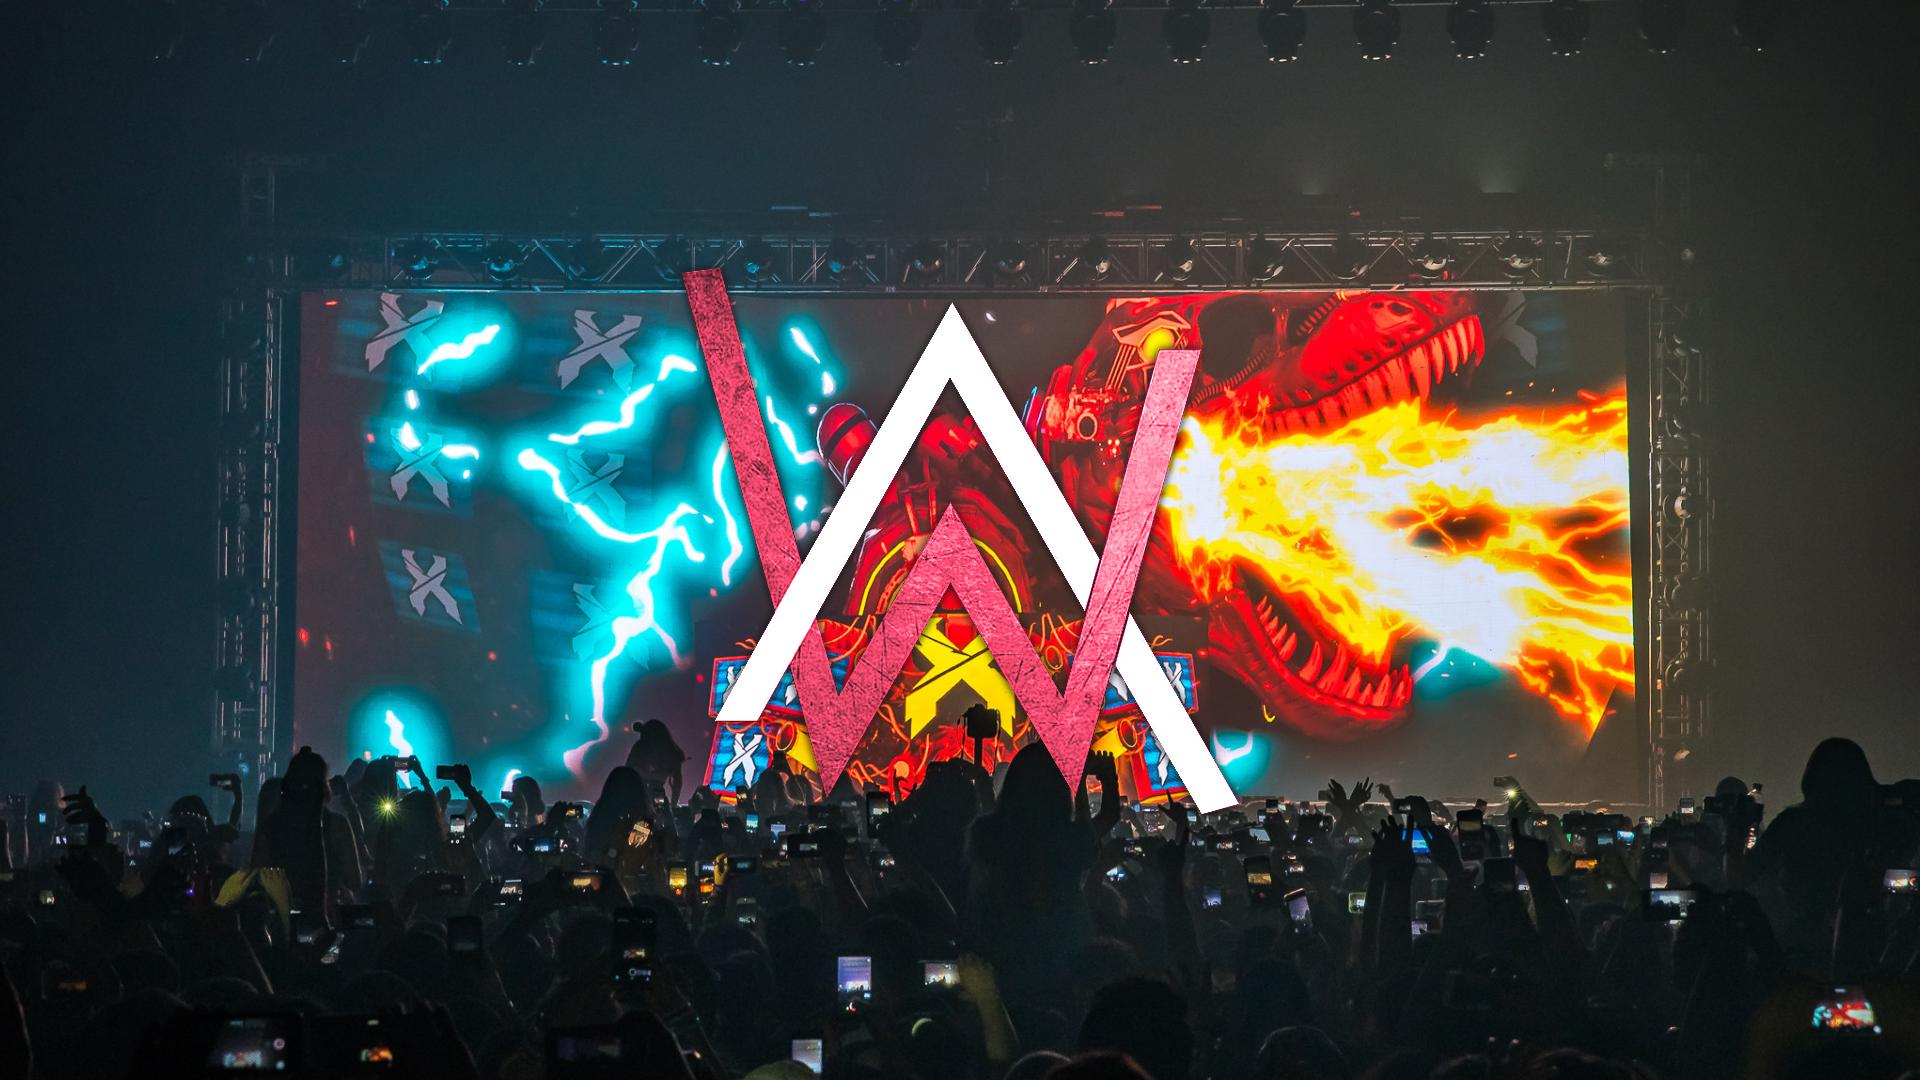 Alan Walker Concert Logo Hd Music 4k Wallpapers Images